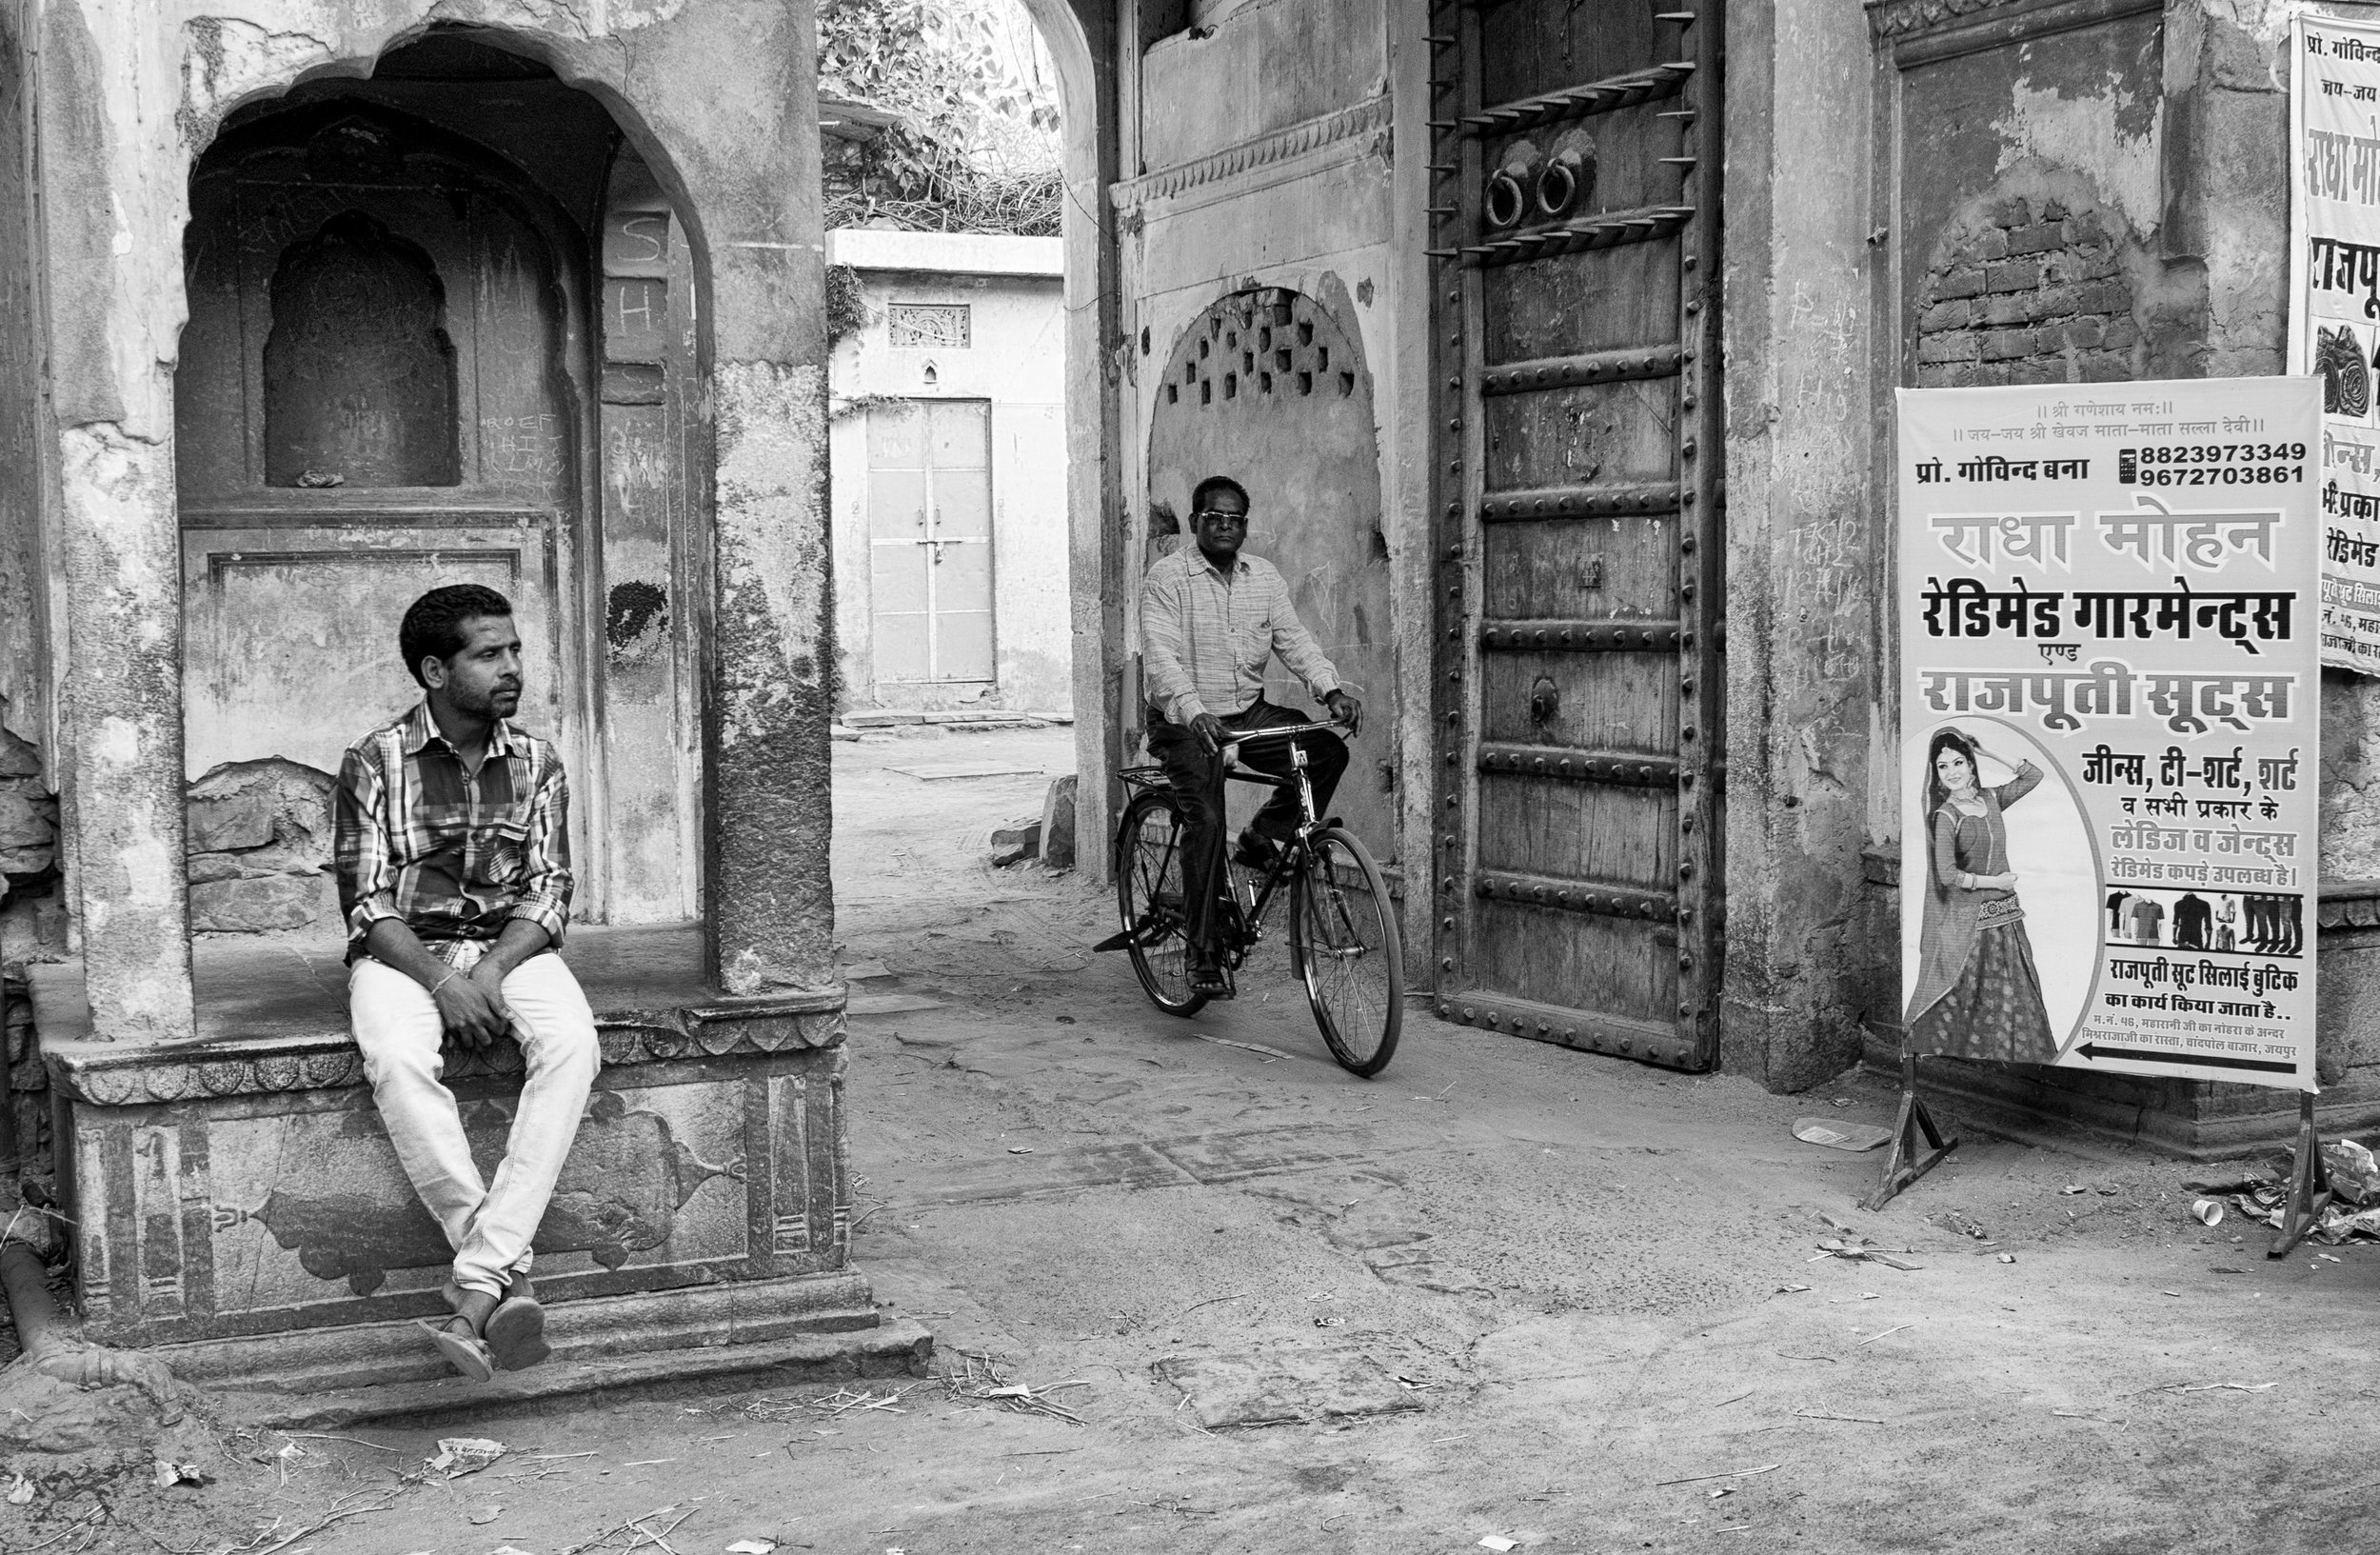 Man Sitting with Other Man on Bicycle on Streets of Jaipur in Black and White - Jaipur, India - Copyright 2016 Ralph Velasco.jpg